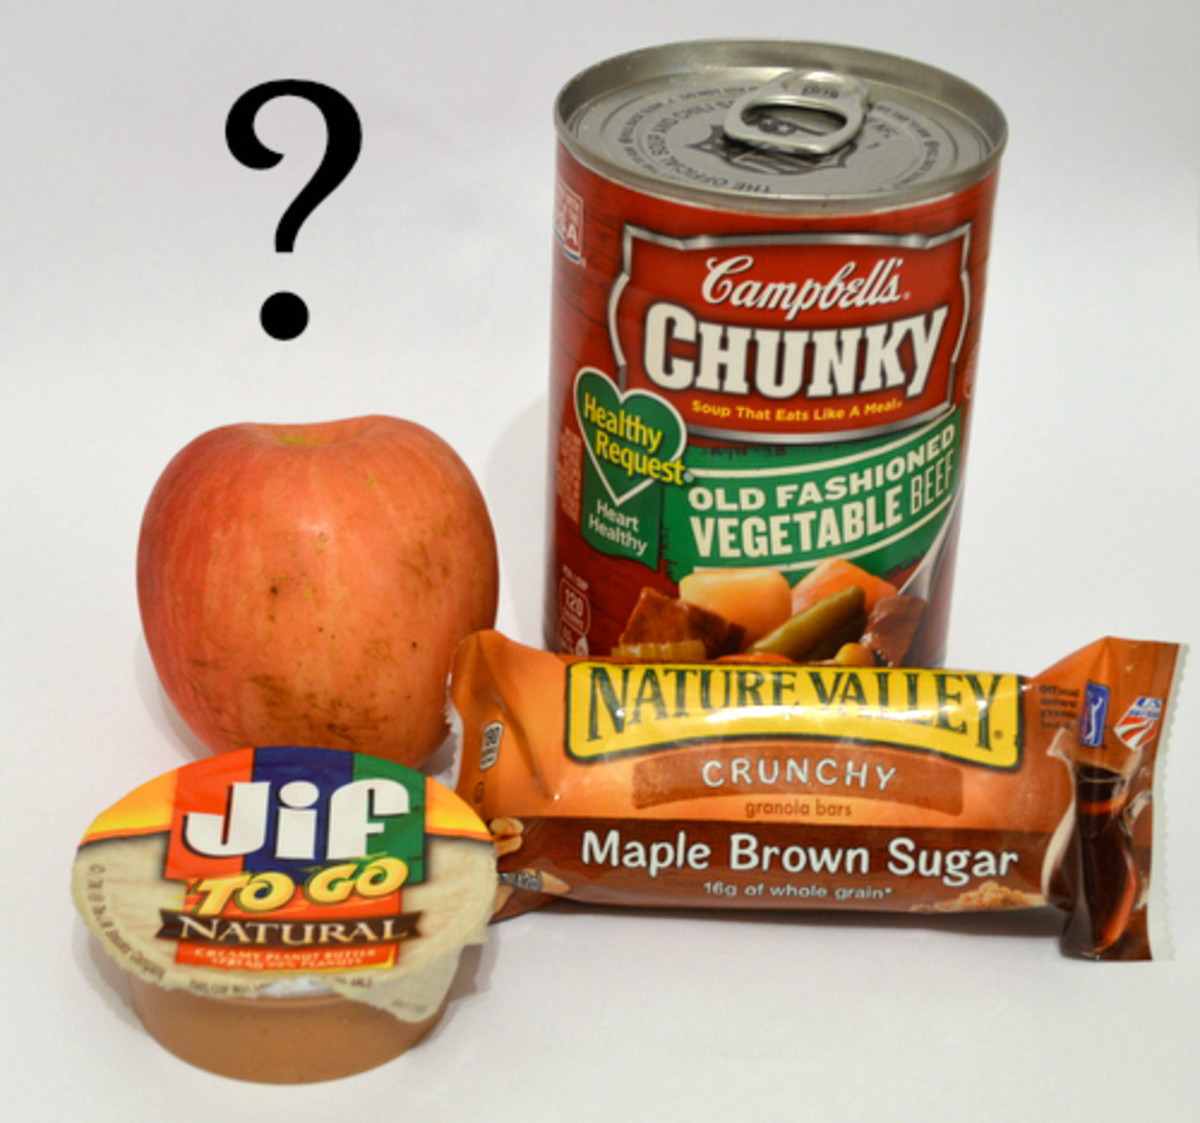 Do you know what foods you can bring through security?